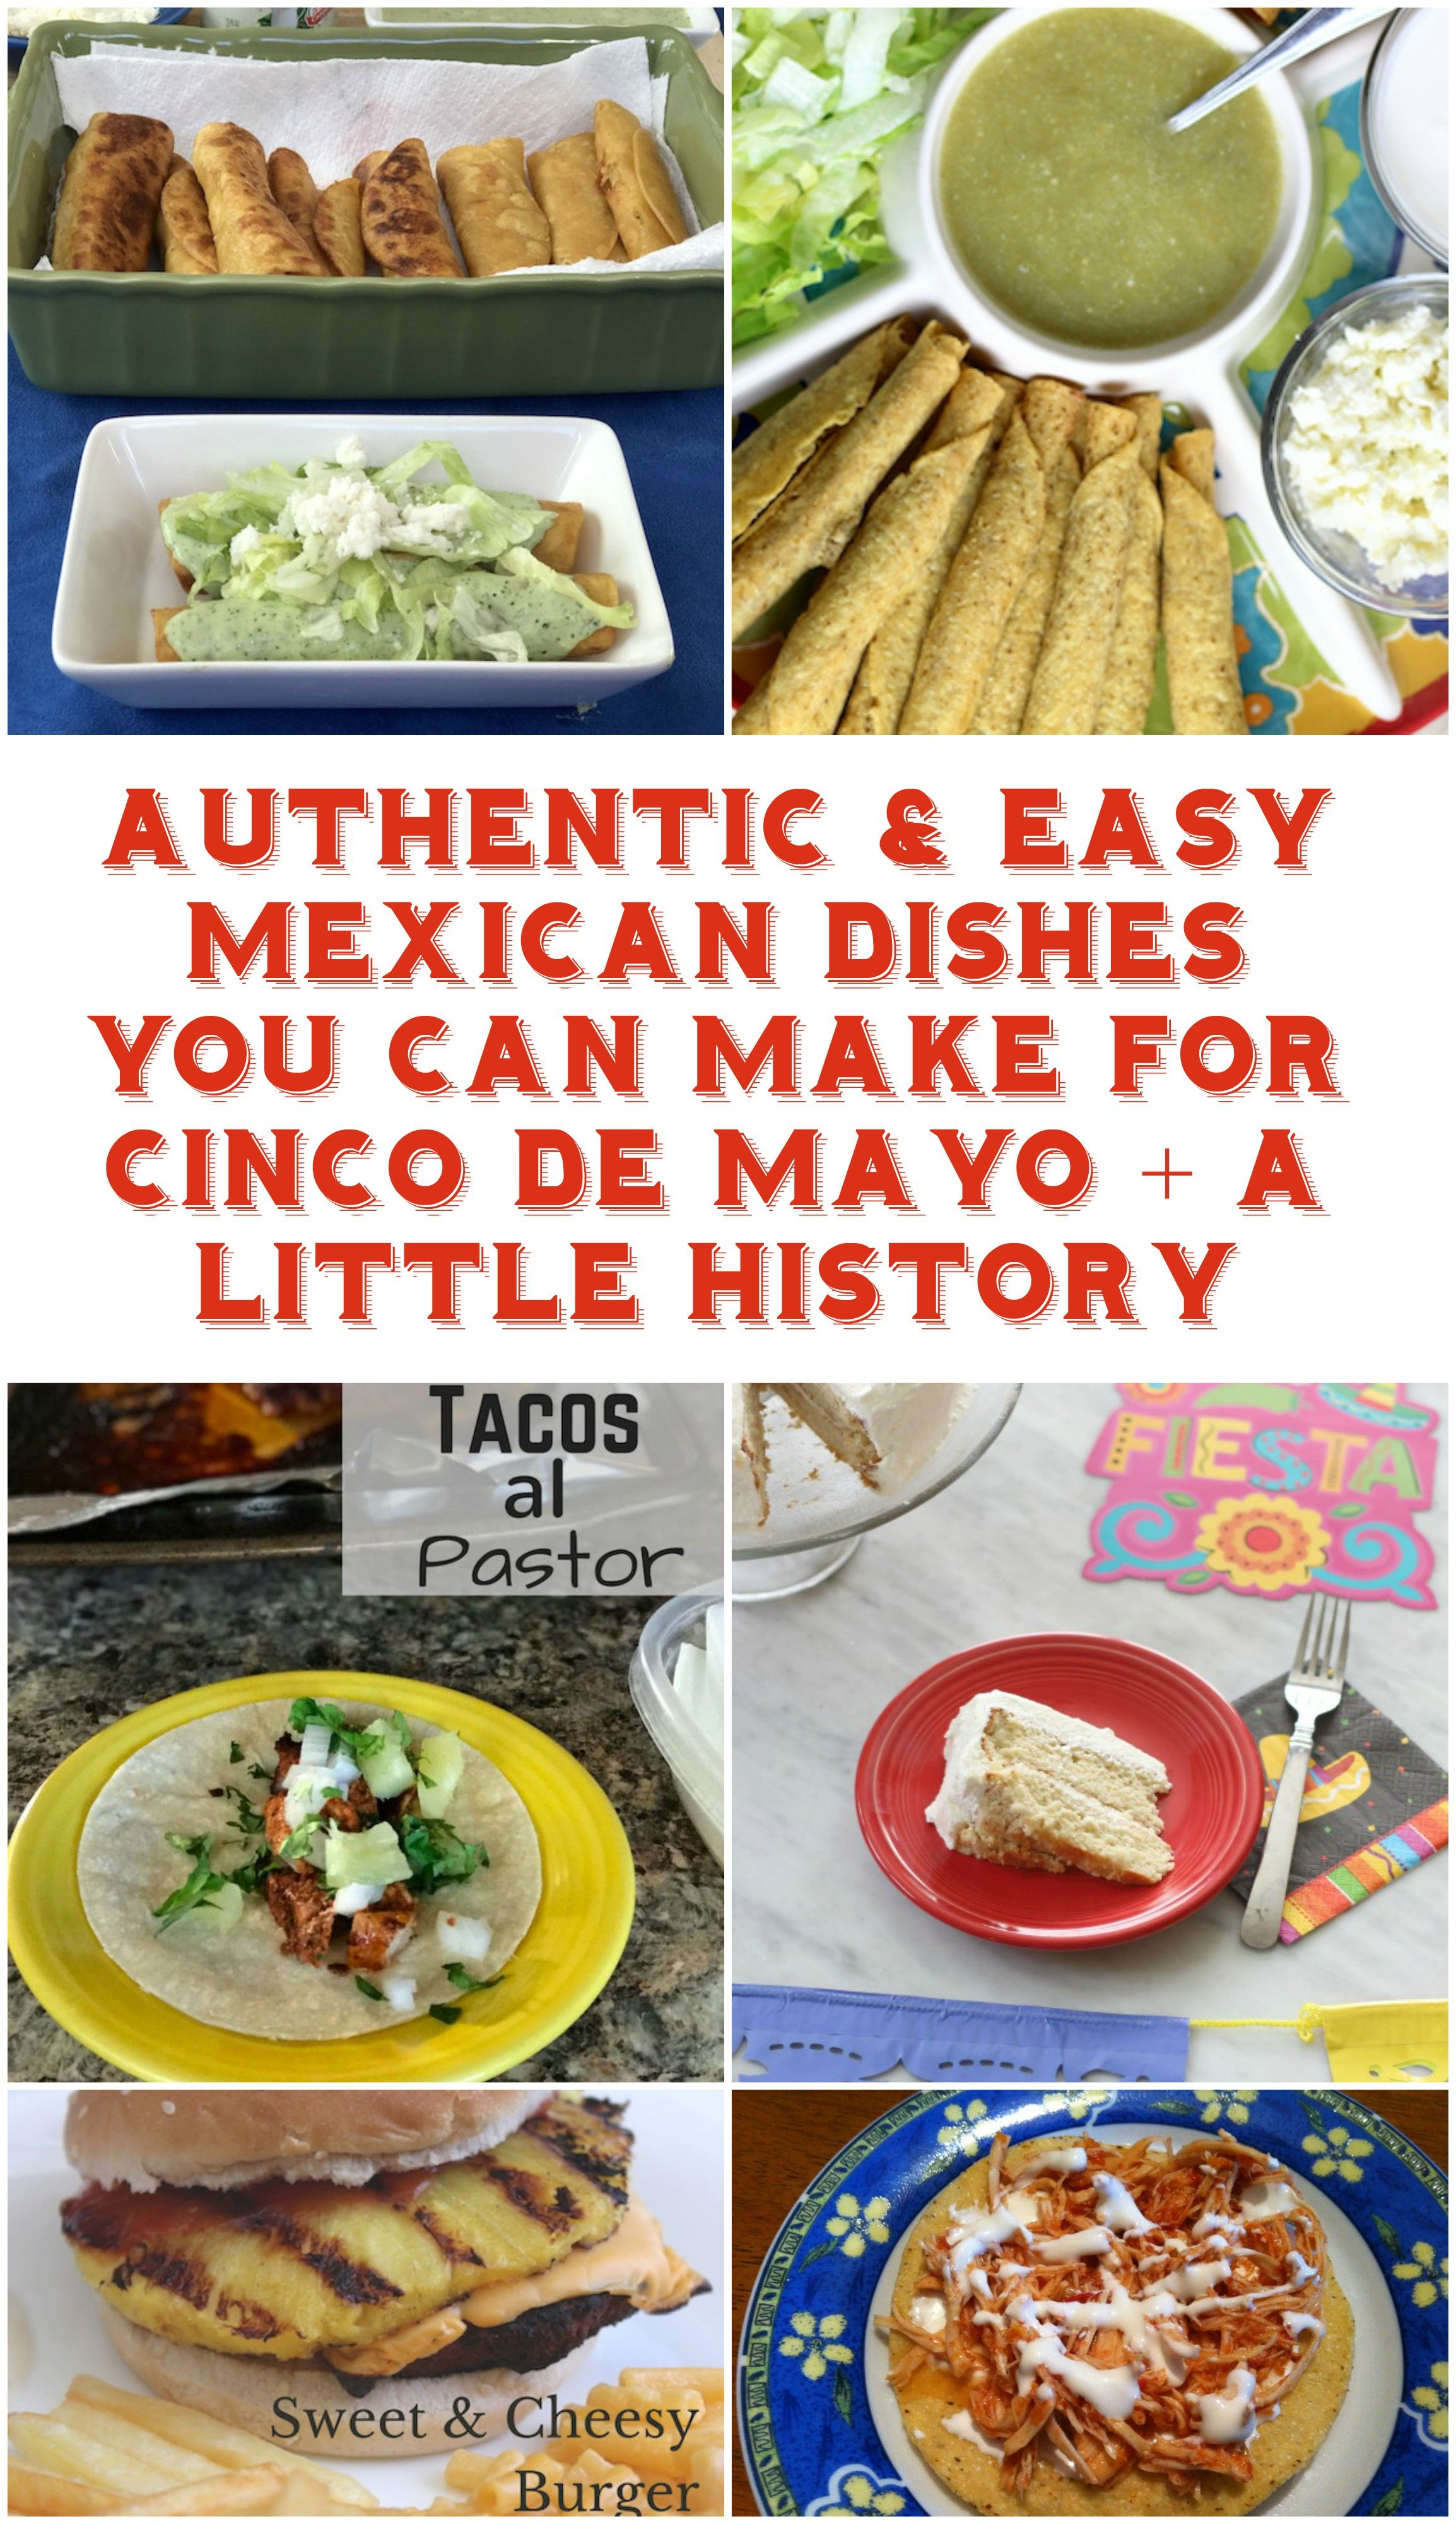 Authentic easy mexican dishes you can make for cinco de mayo a authentic easy mexican dishes you can make for cinco de mayo a little history forumfinder Choice Image